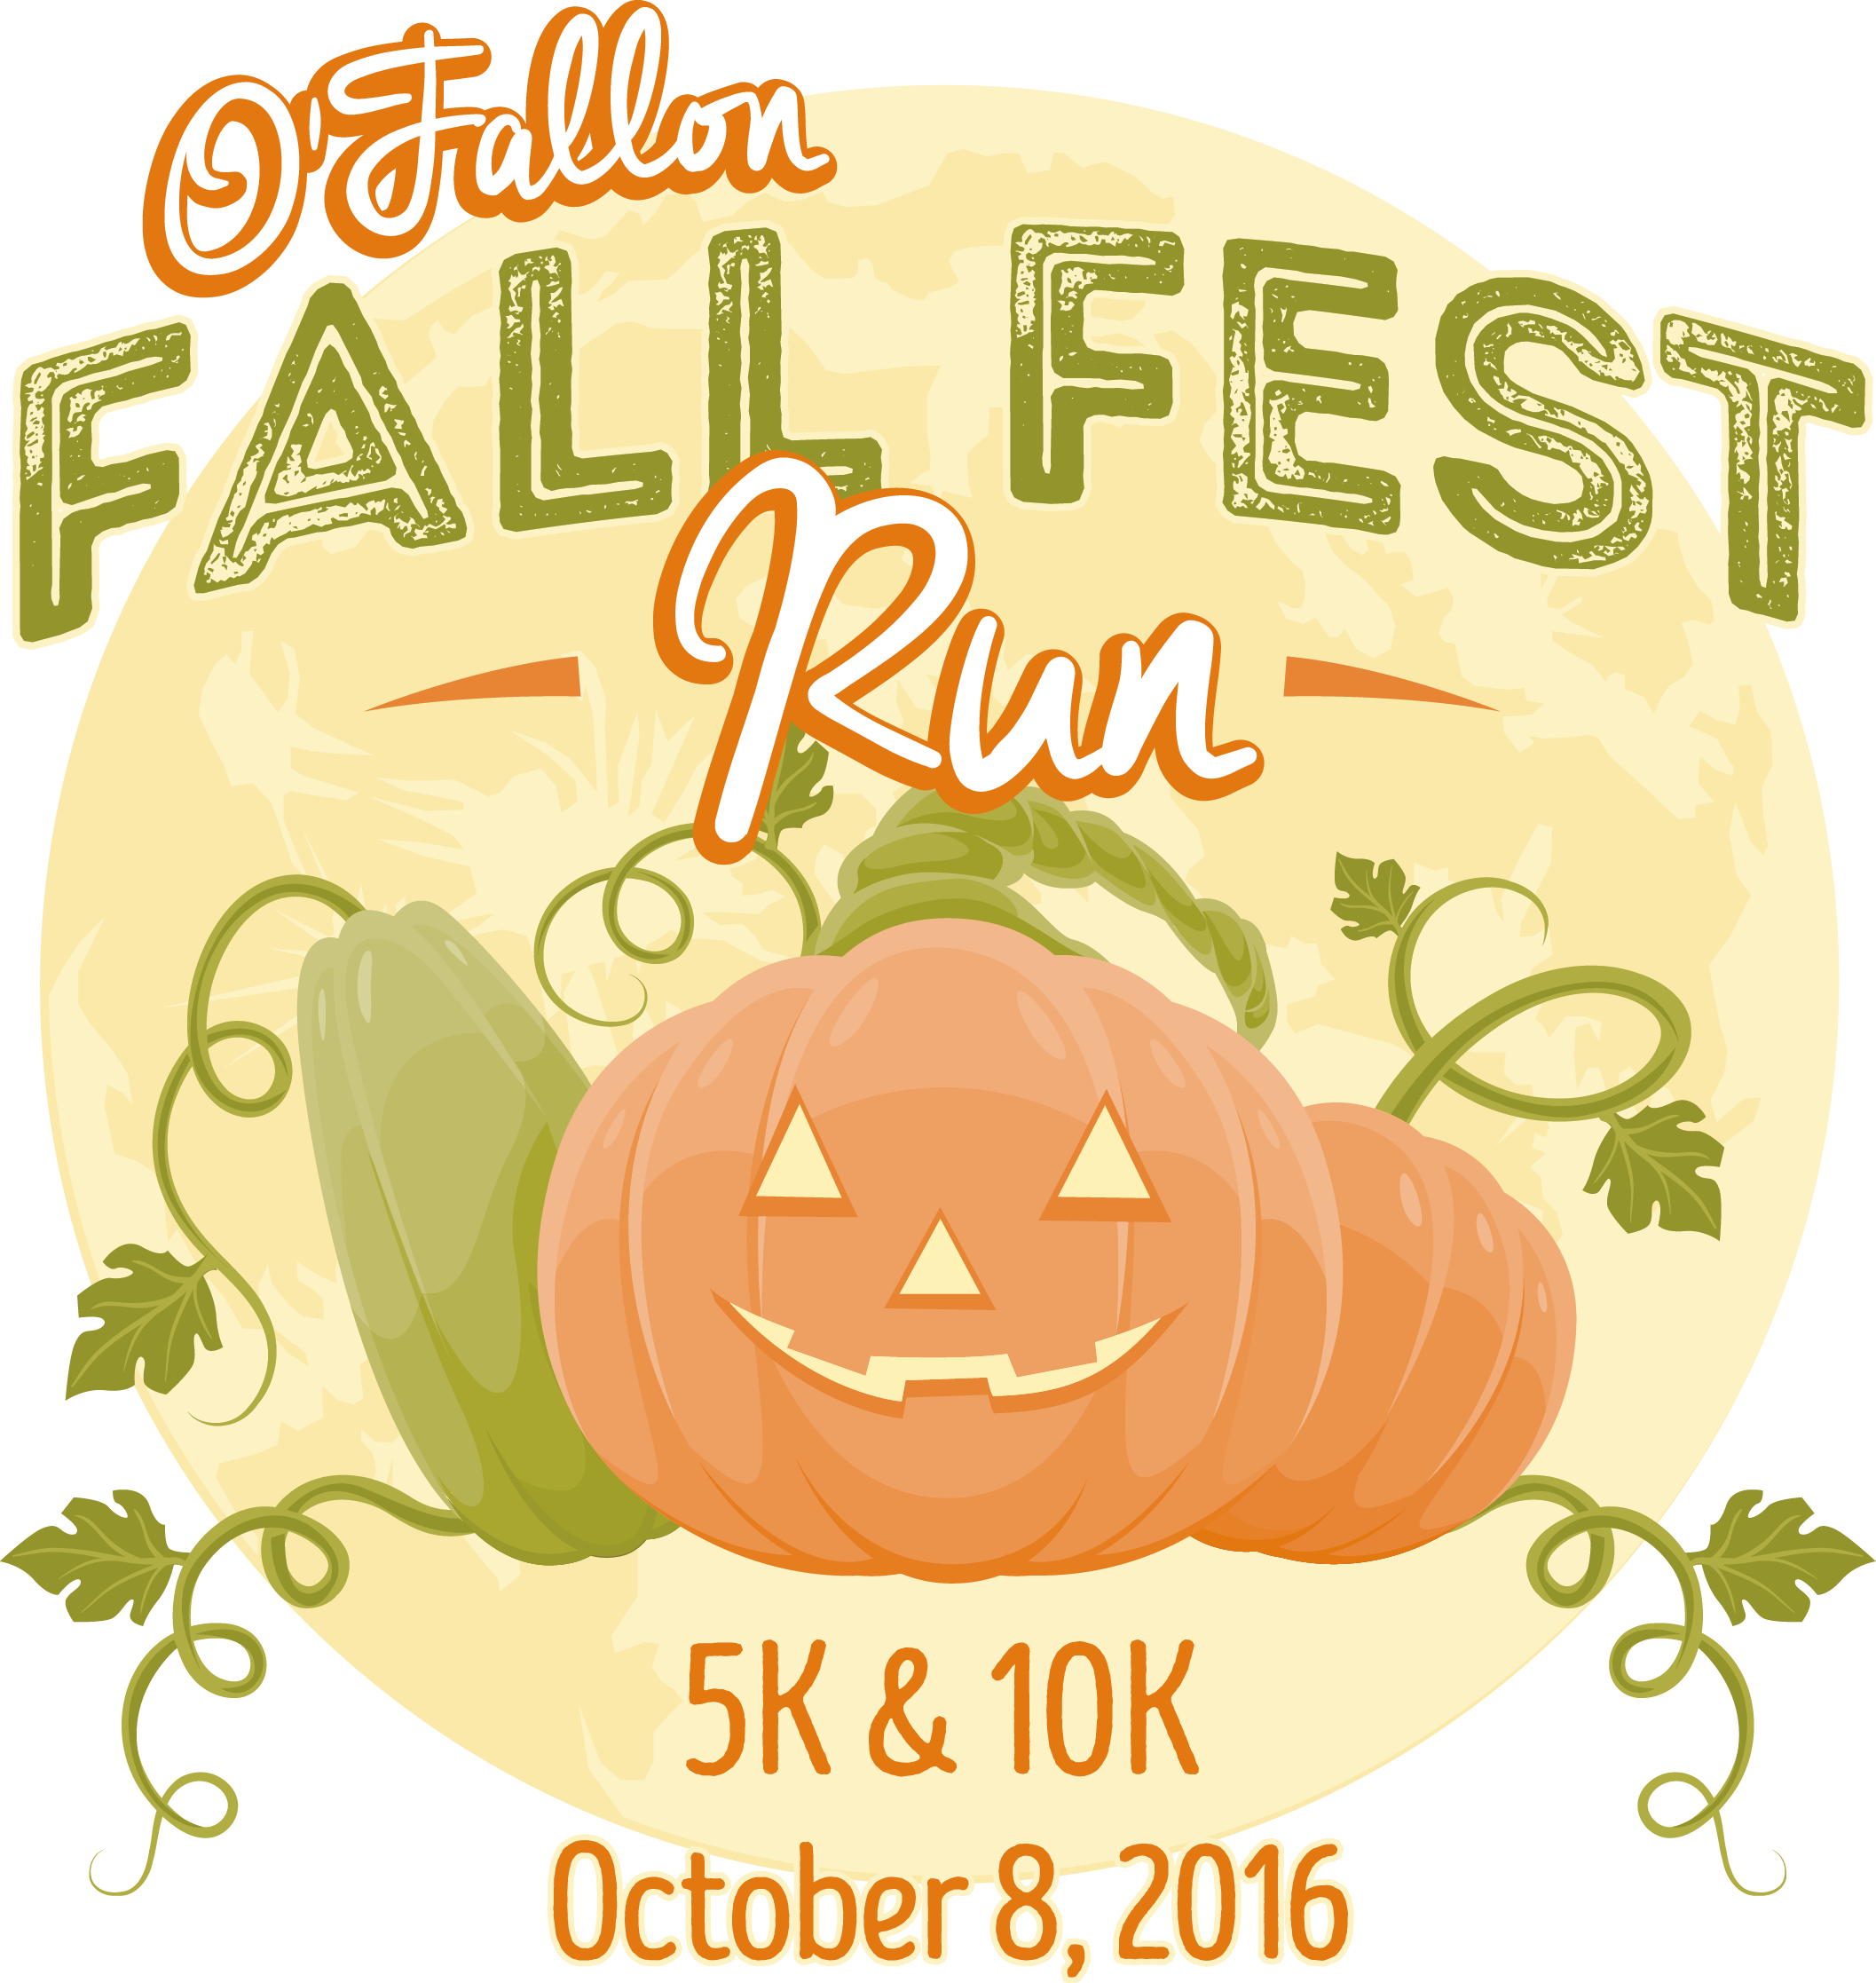 O'Fallon Fall Fest Run